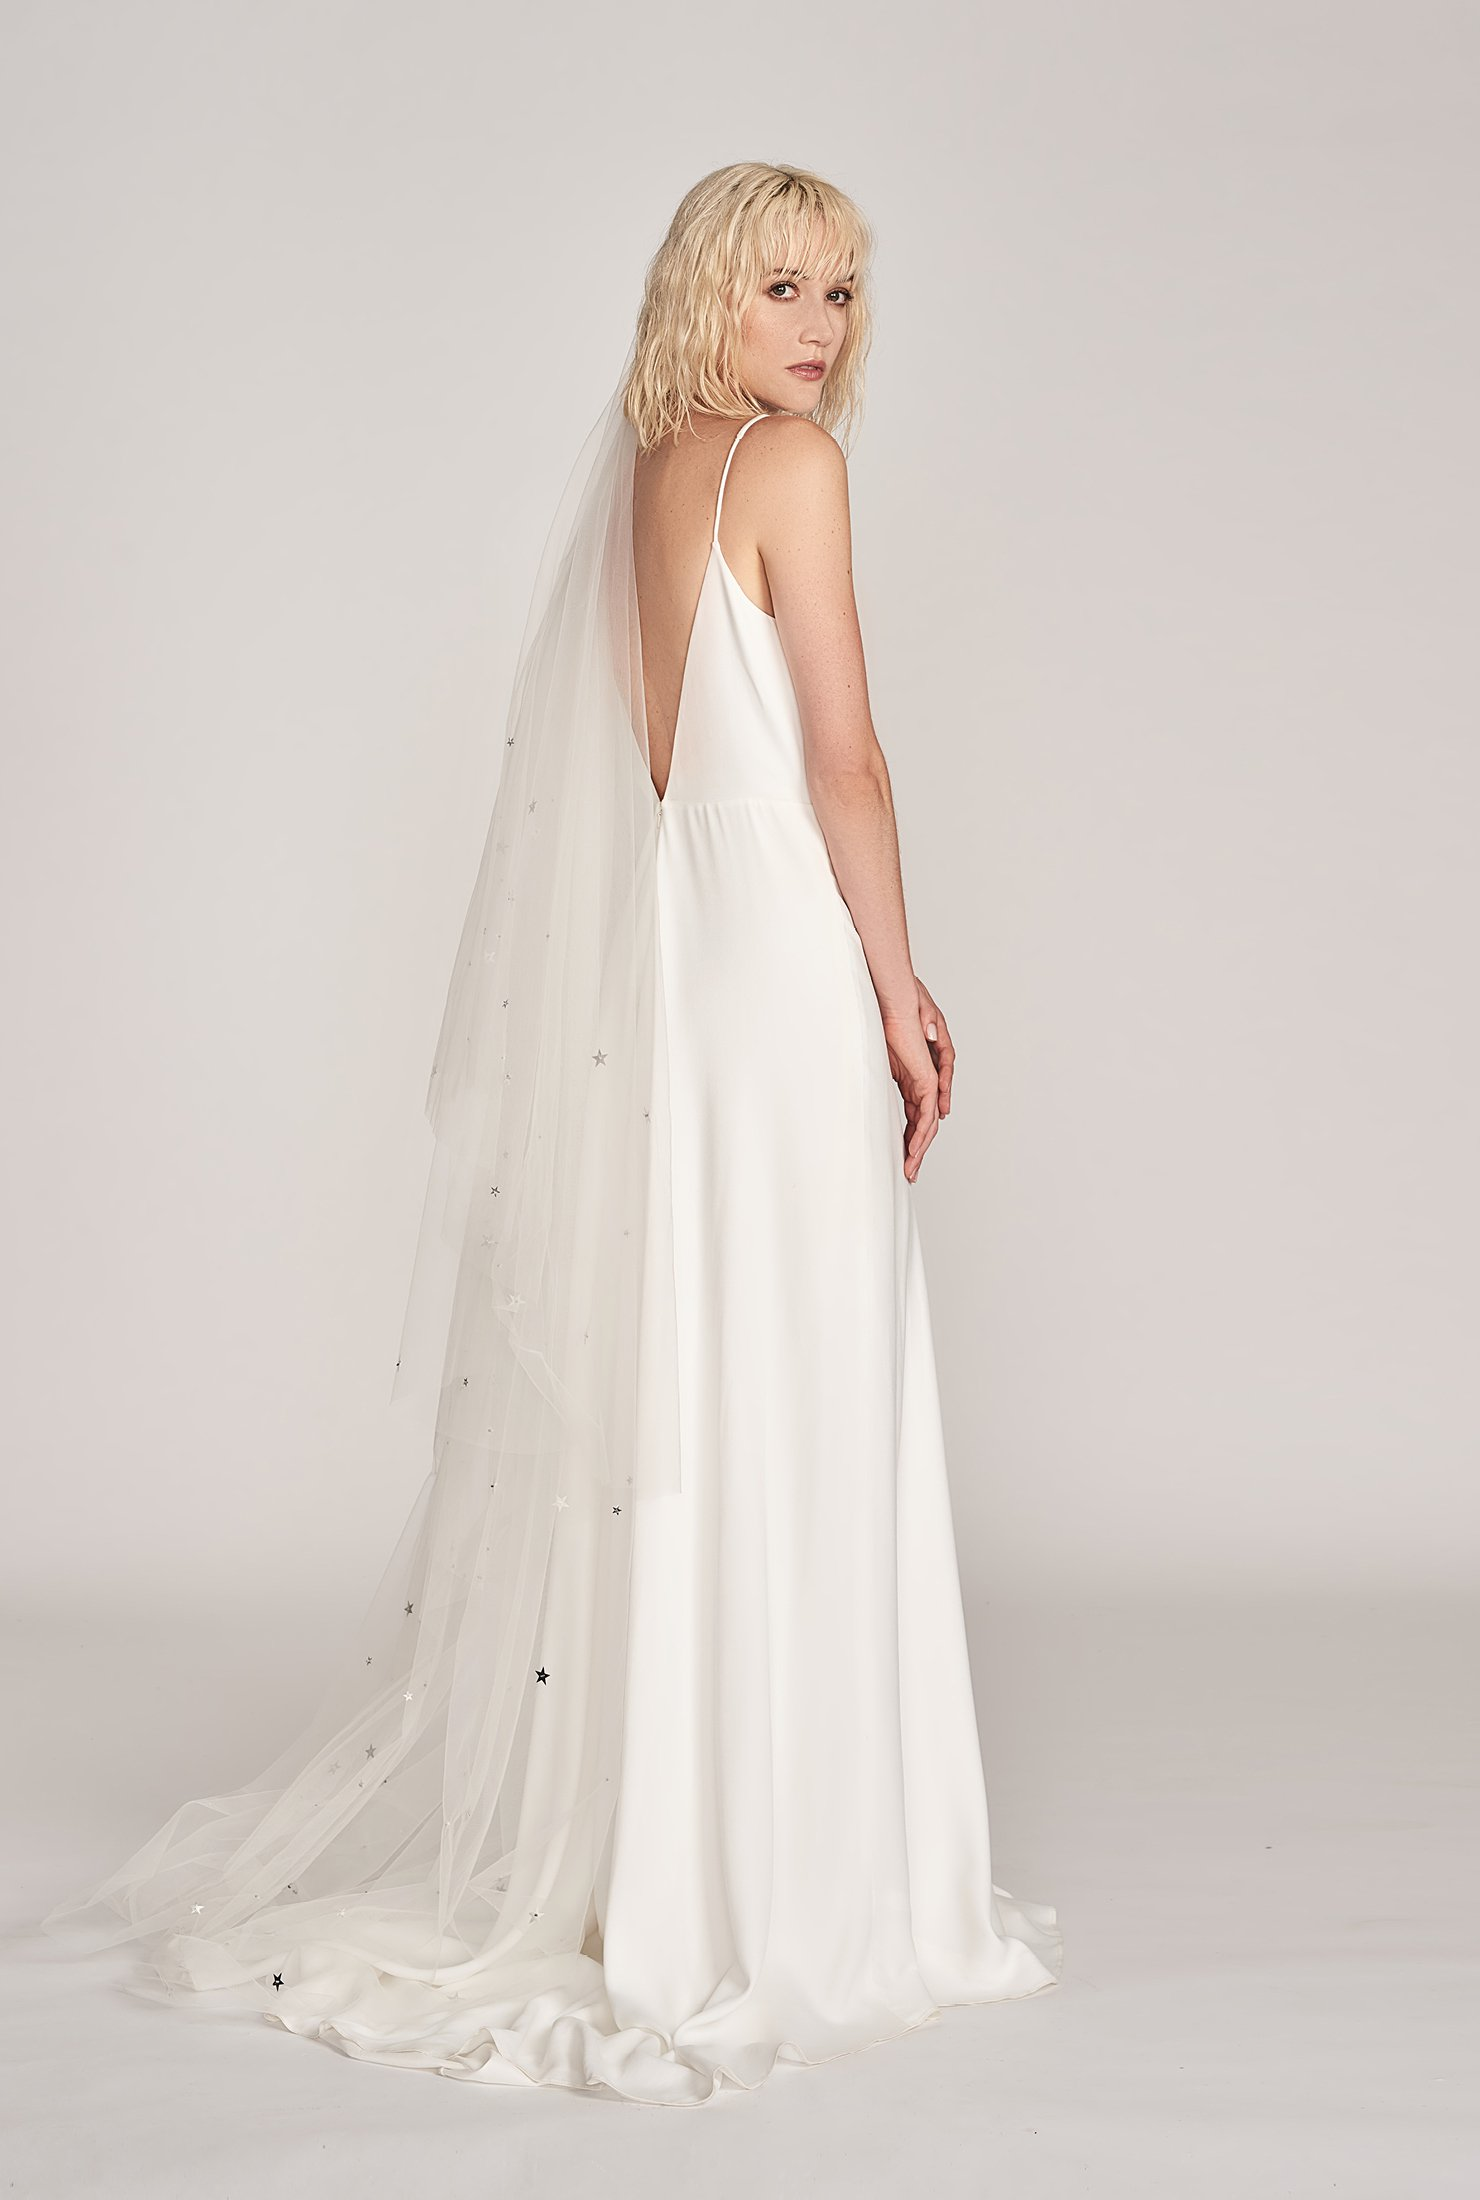 Charlie Brear Fernley Gown, $3250,  Through The White Door,  Dove Grey Bridal Star Drop Veil, $520,   Hope X Page  .